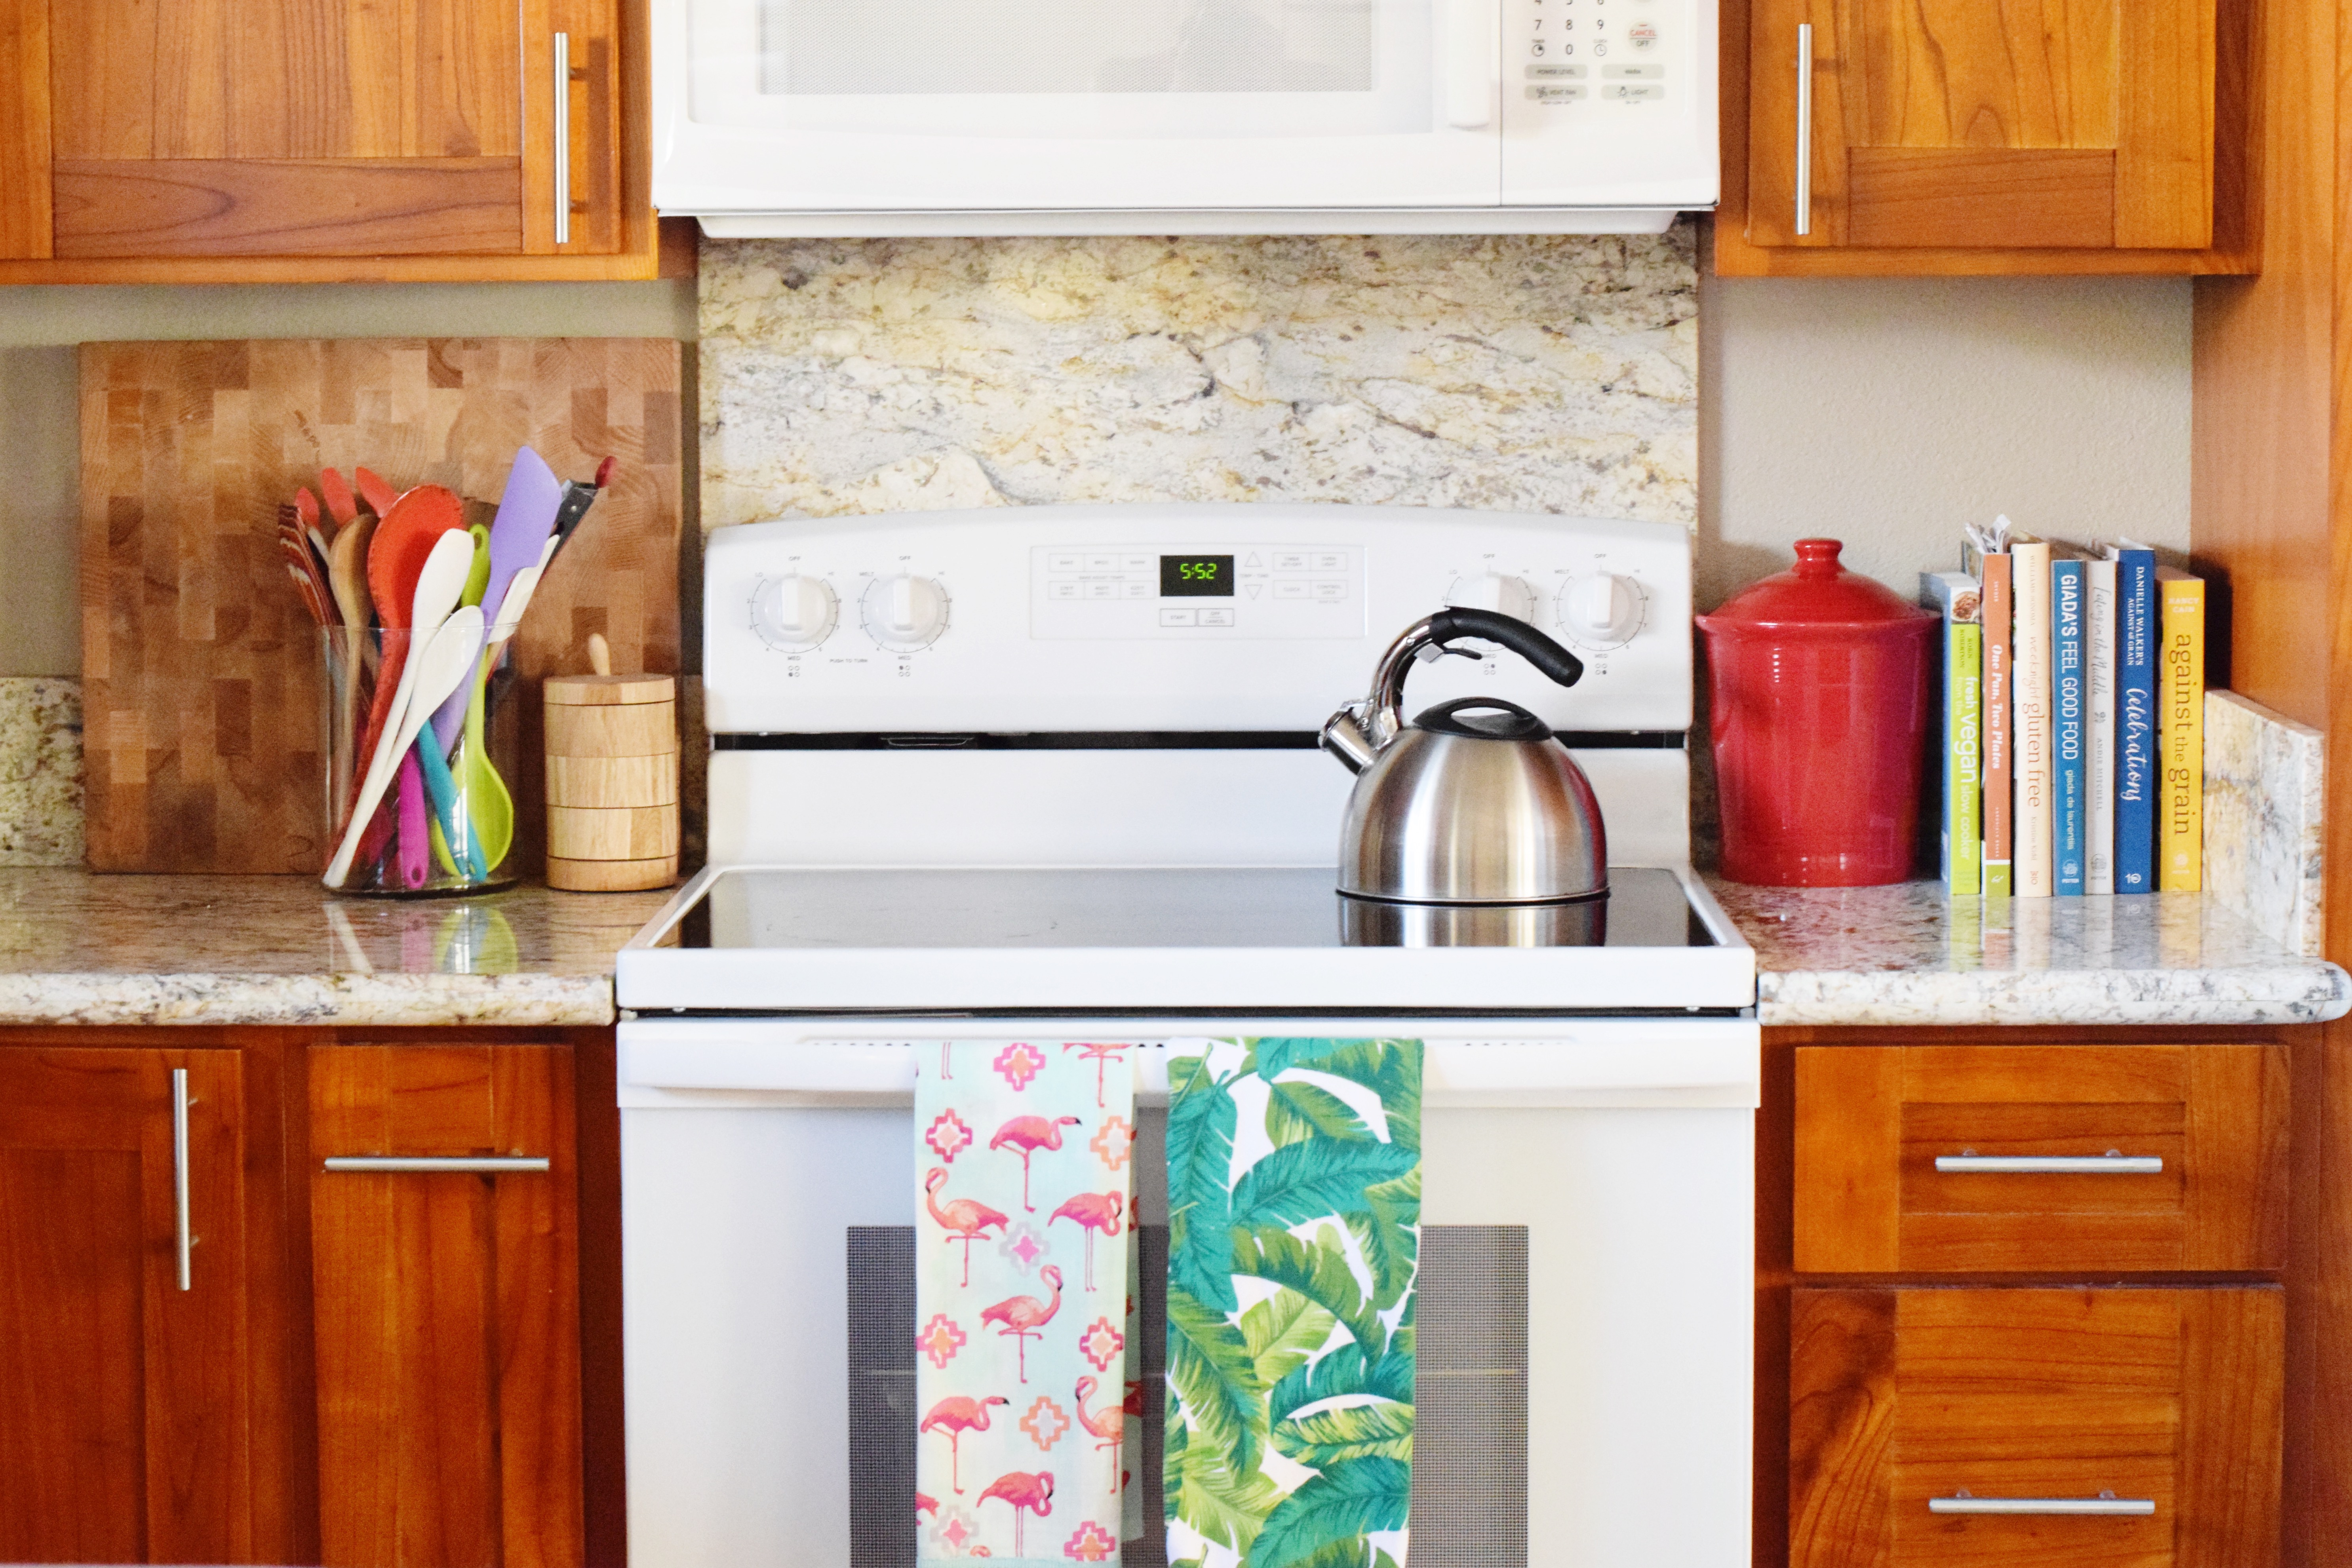 Colorful Kitchen - Tropical Dish Towels - Hawaiian Home Feature on Apartment Therapy - CommuniKait